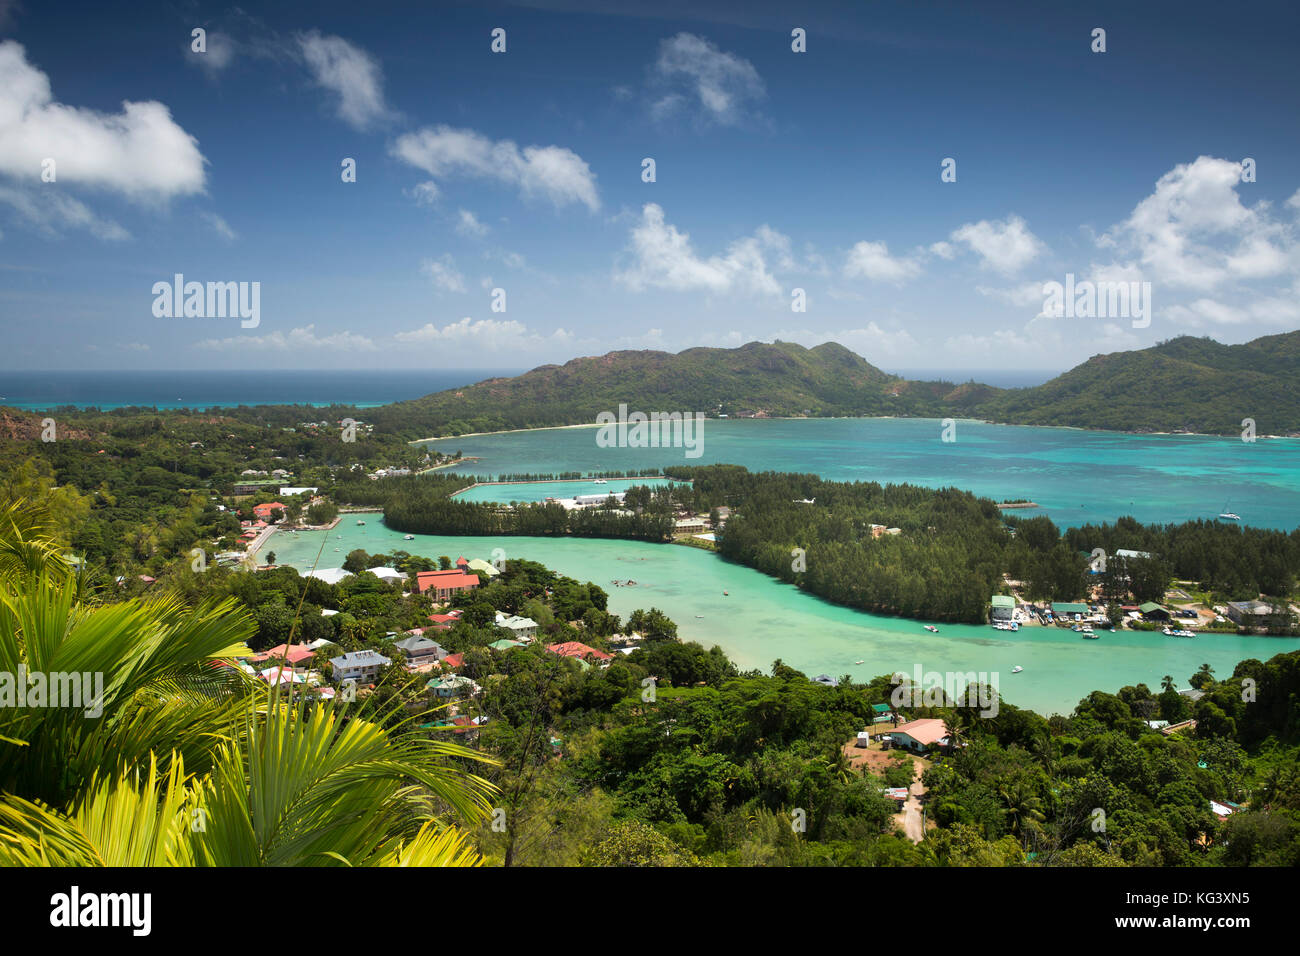 Sey335The Seychelles, Praslin, Baie St Anne elevated view from Fond Ferdinand Nature Reserve - Stock Image